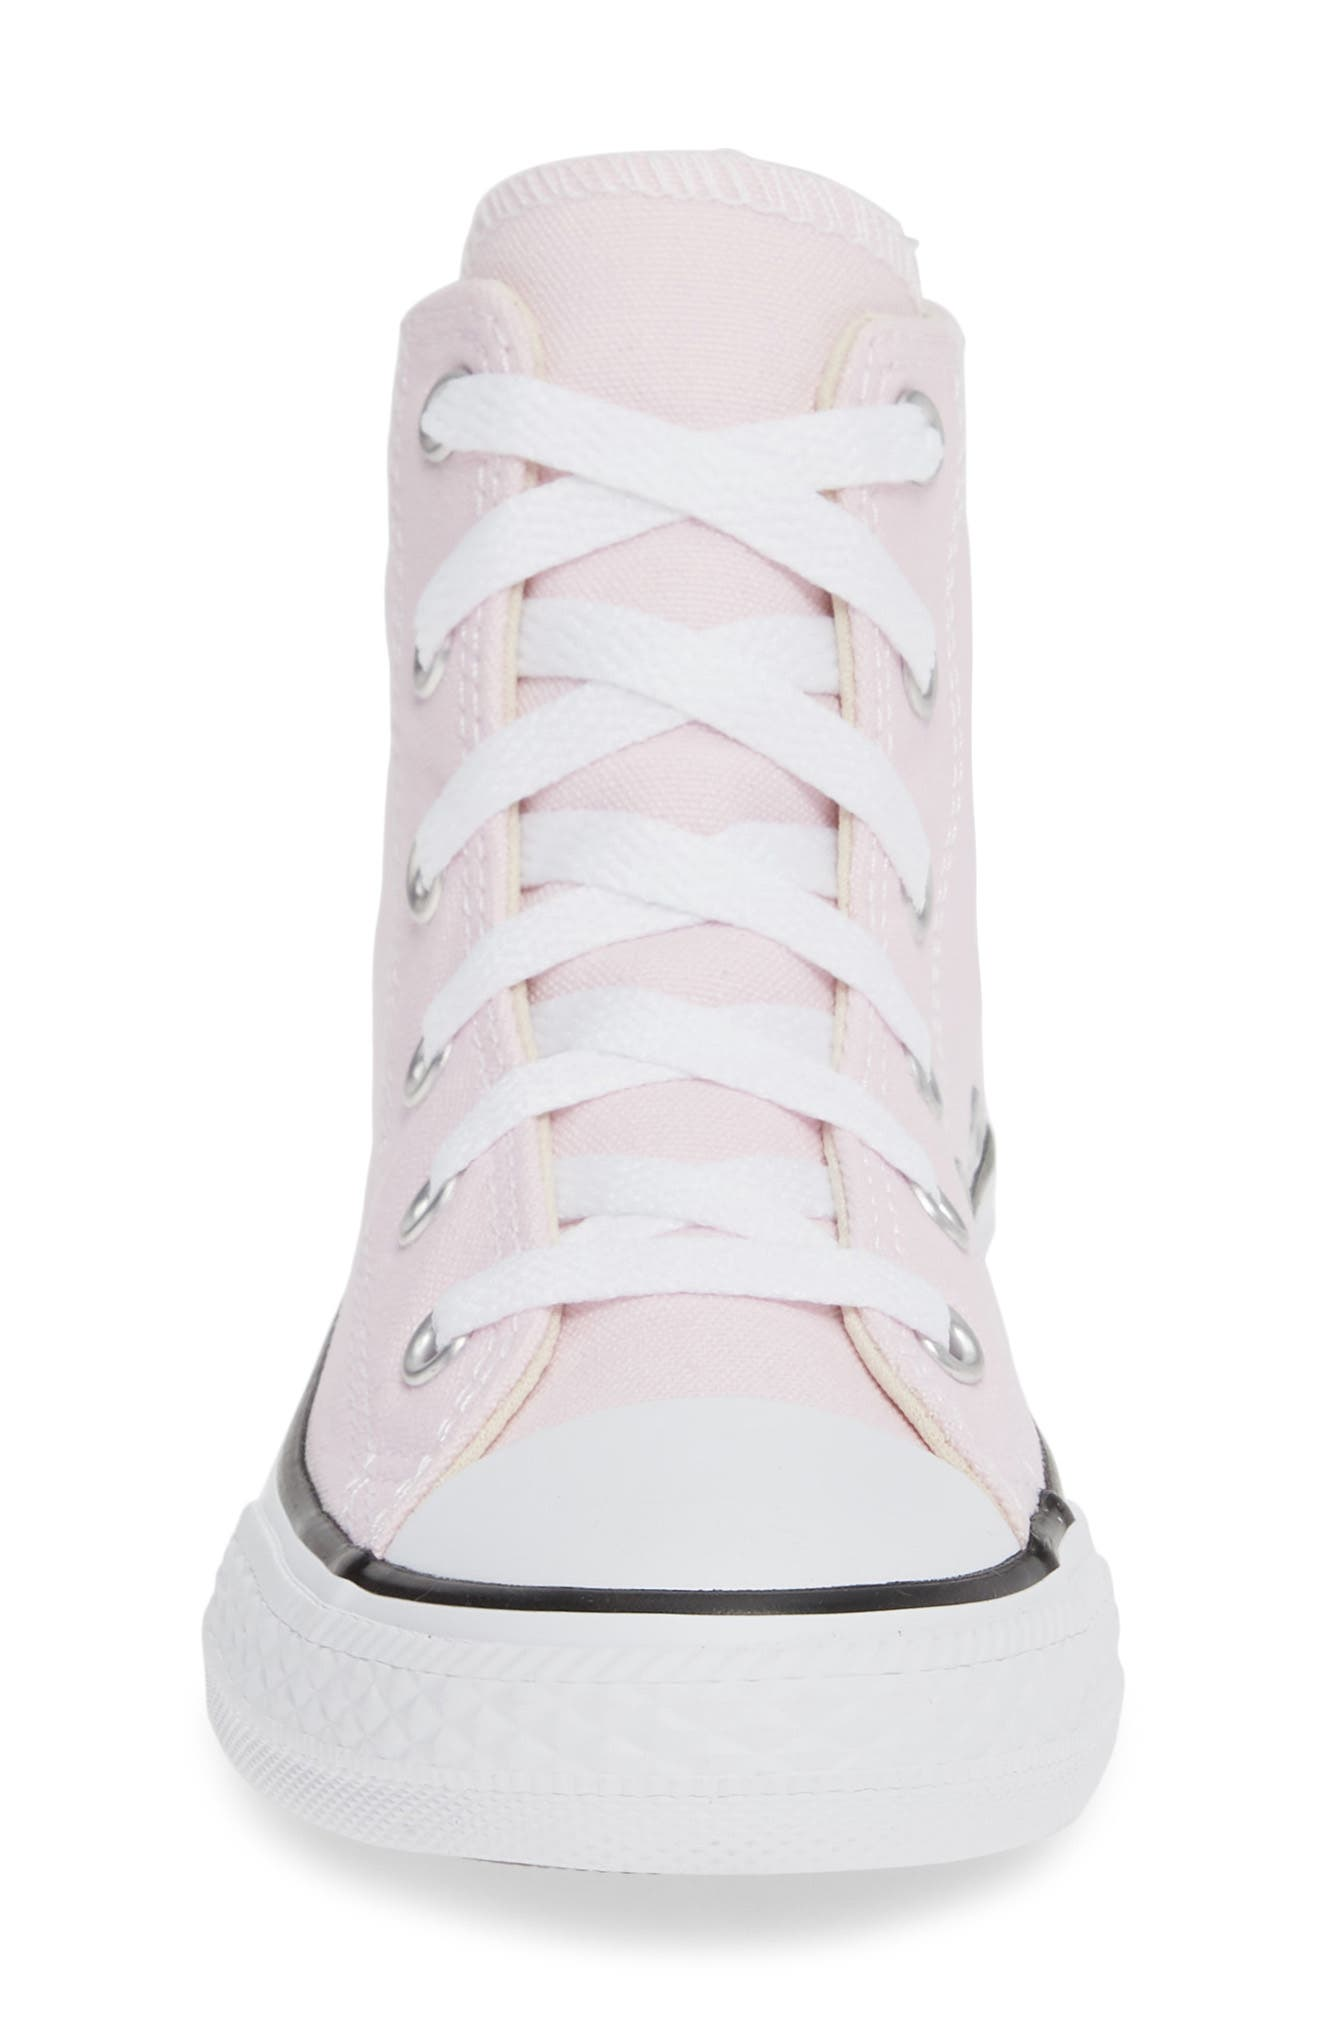 CONVERSE, Chuck Taylor<sup>®</sup> High Top Sneaker, Alternate thumbnail 4, color, PINK FOAM/ IVORY/ WHITE